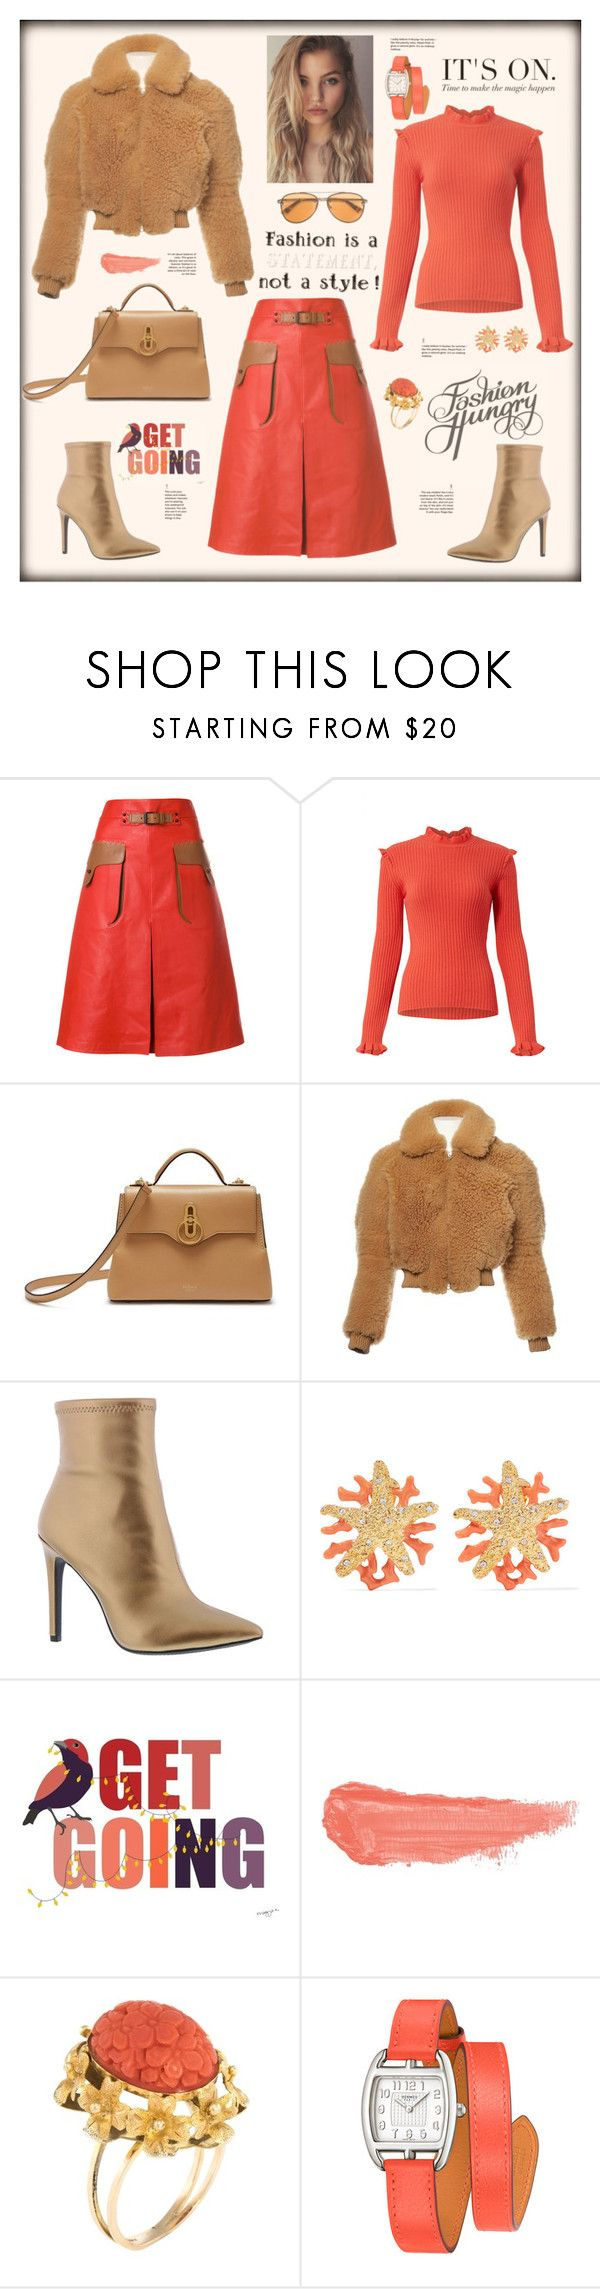 """Fashion hungry"" by zabead ❤ liked on Polyvore featuring Bottega Veneta, Mulberry, Acne Studios, Jessica Simpson, Kenneth Jay Lane, By Terry, Hermès and McQ by Alexander McQueen"